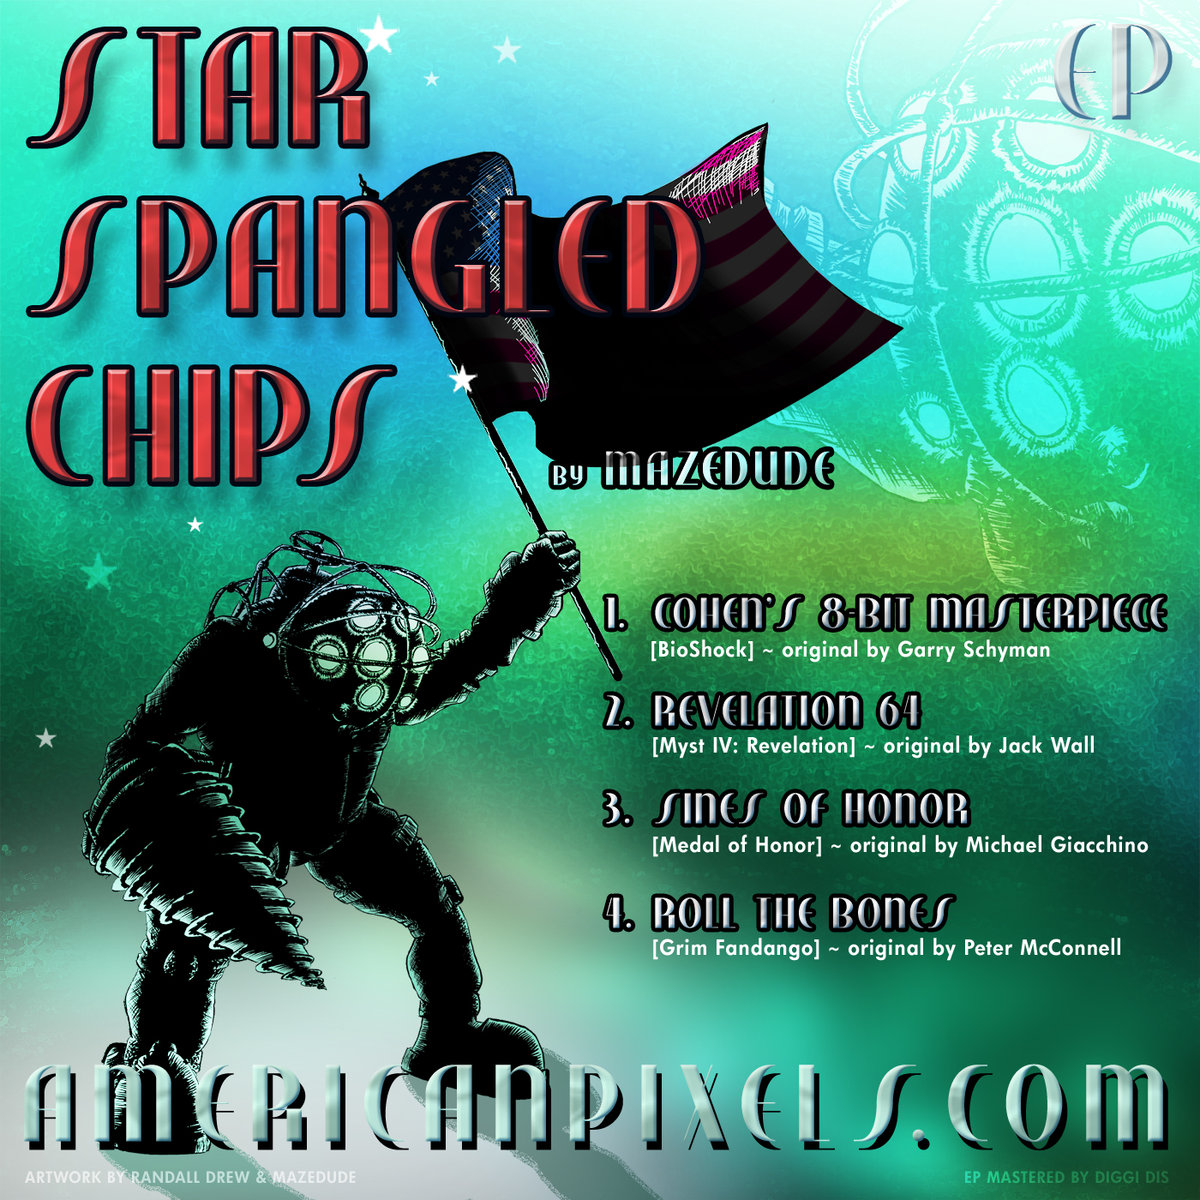 Star Spangled Chips